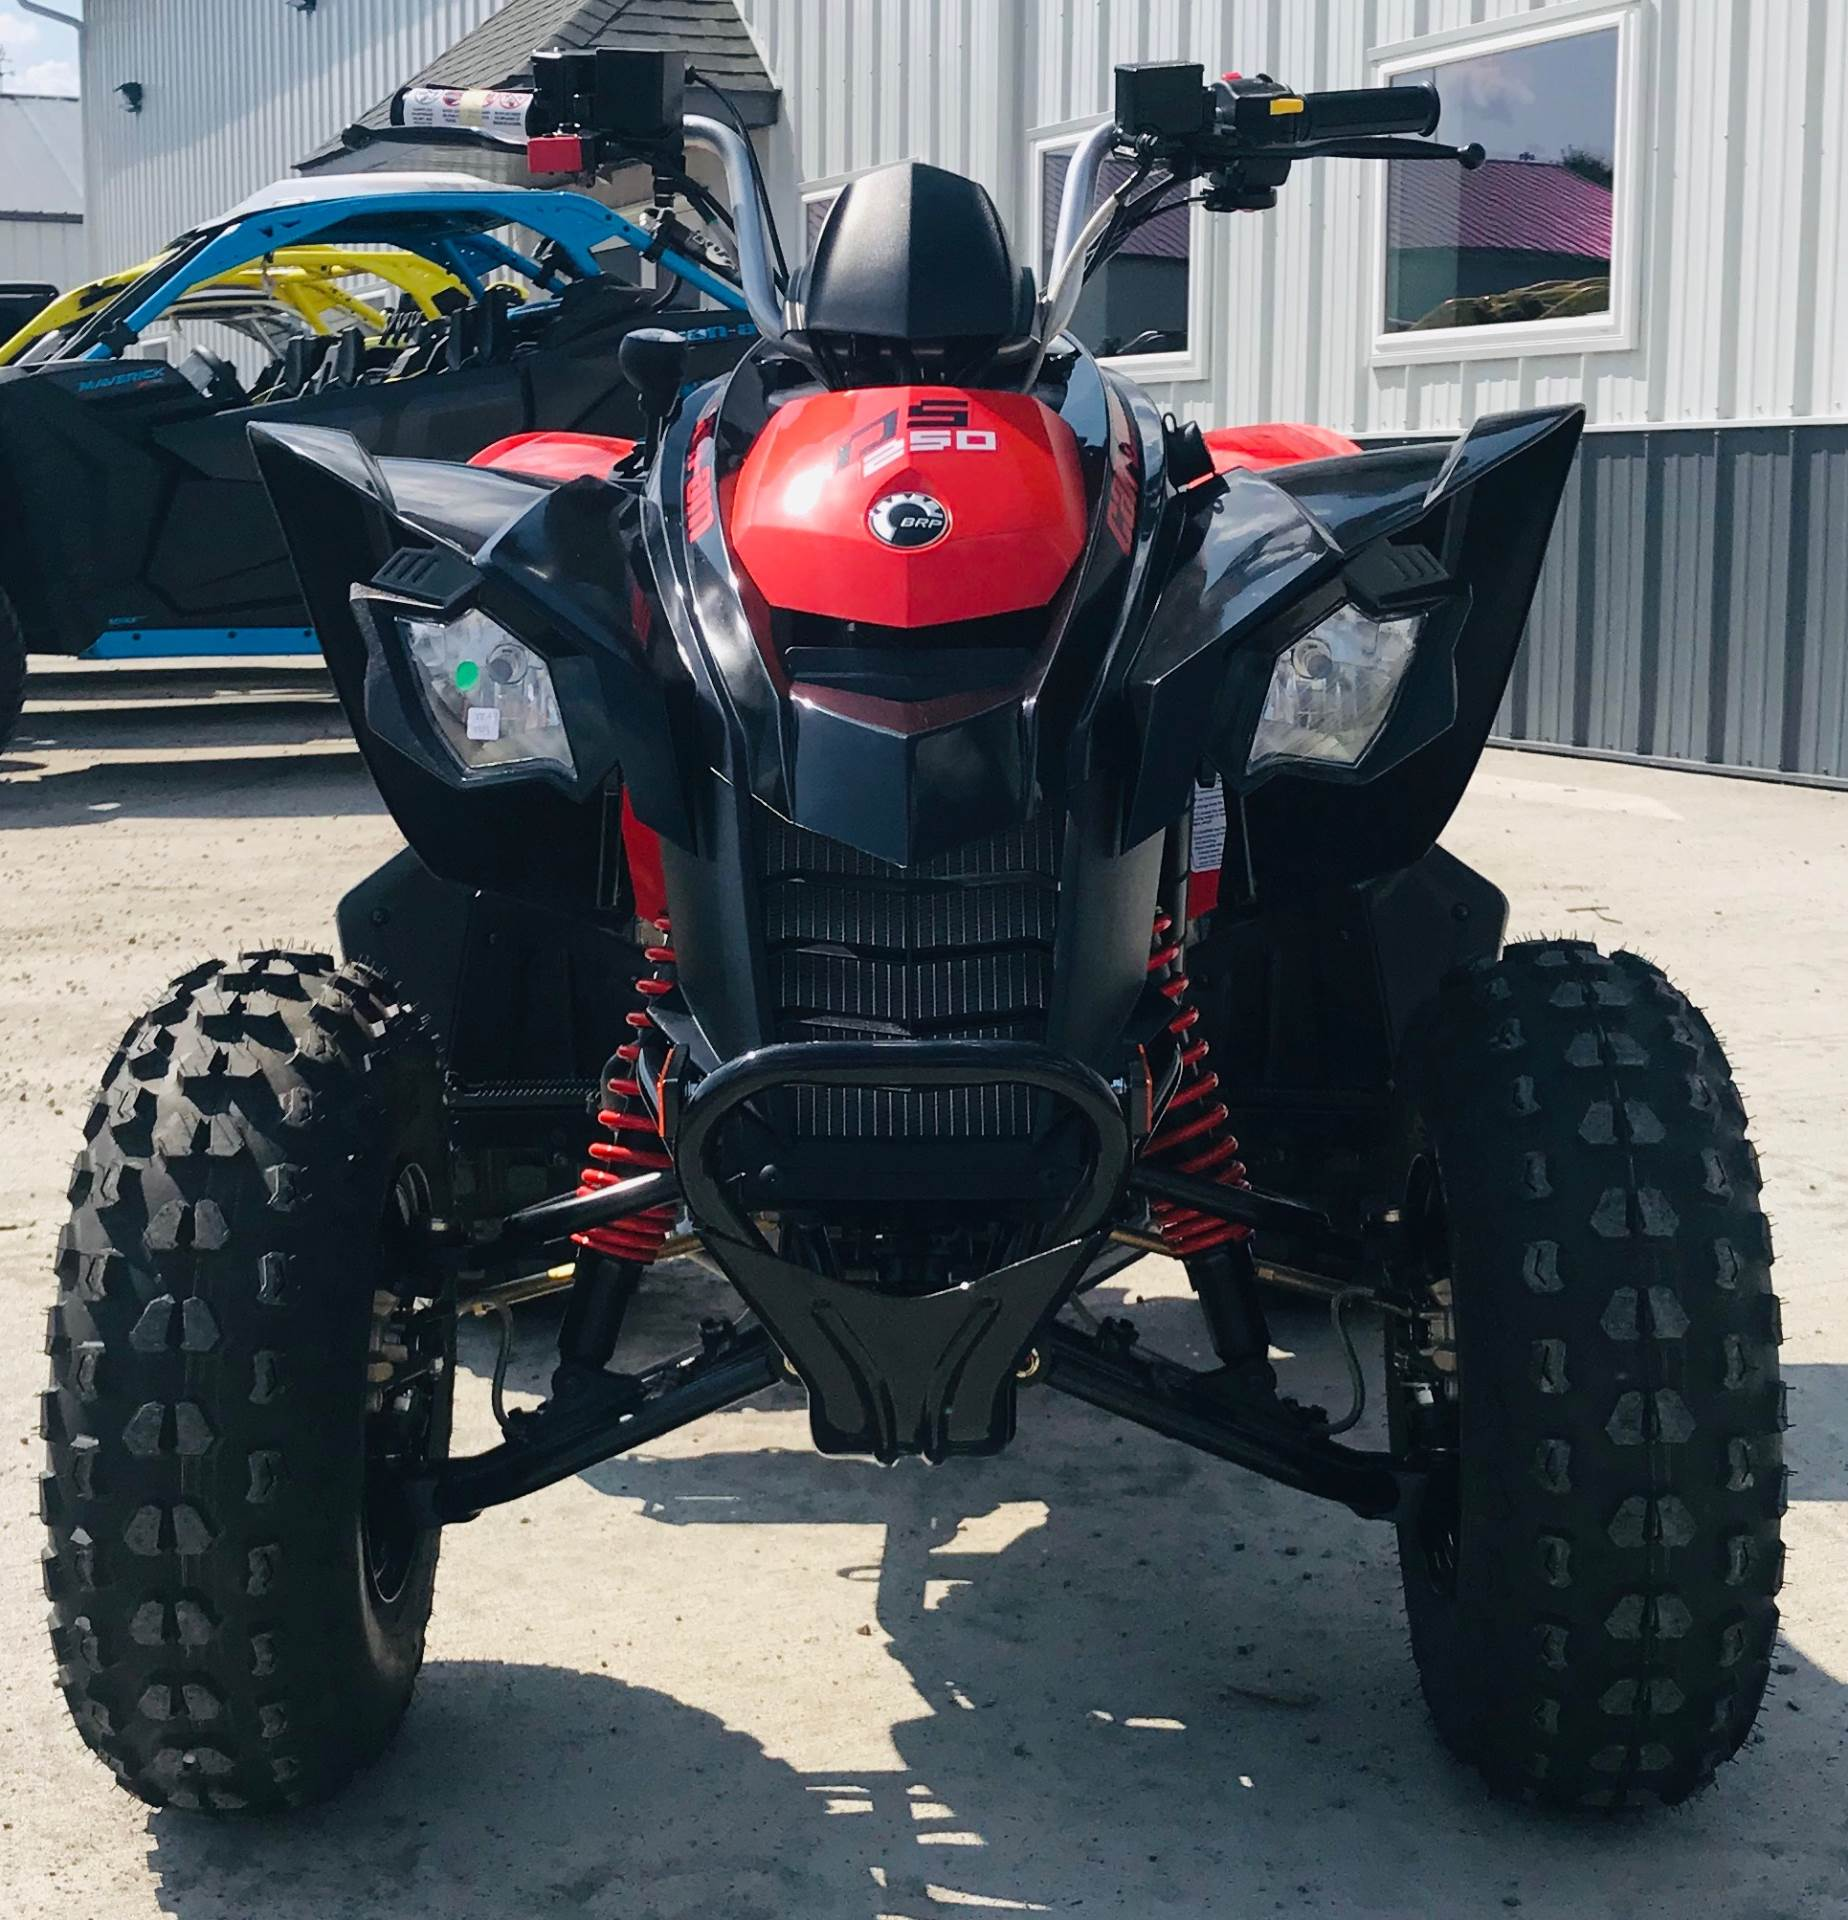 2020 Can-Am DS 250 in Cambridge, Ohio - Photo 3